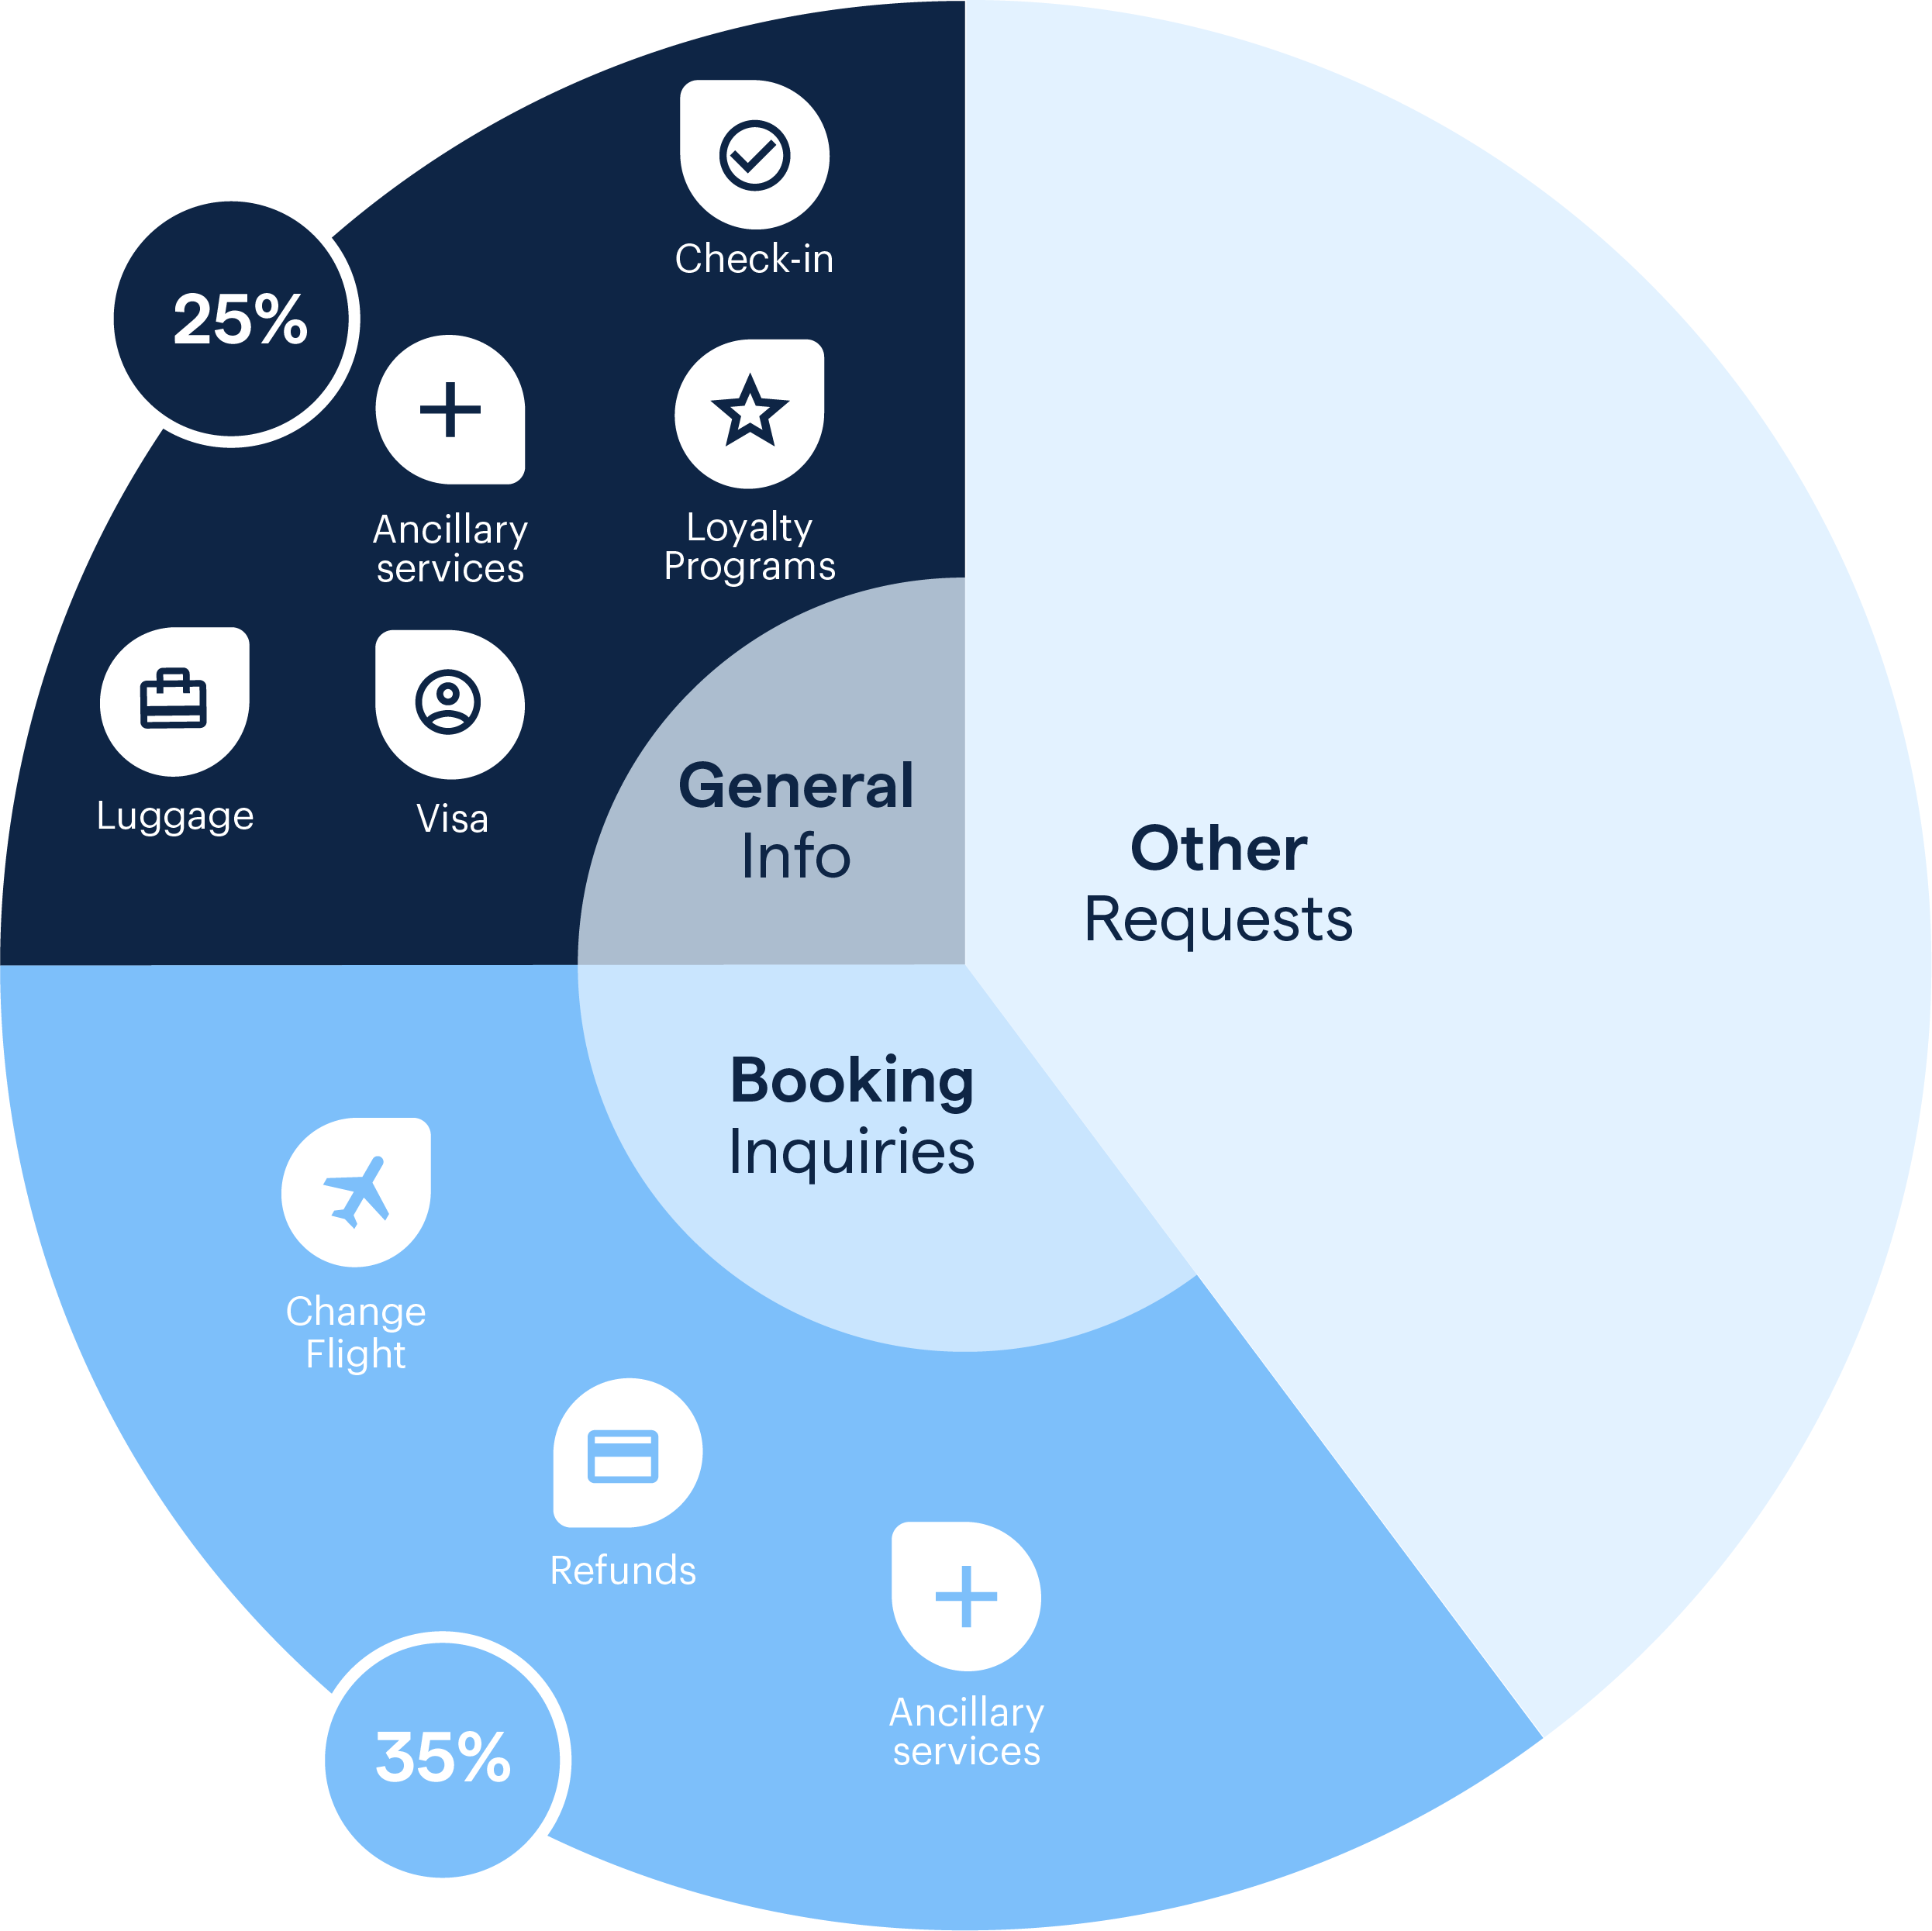 Types of Requests That Should be Automated